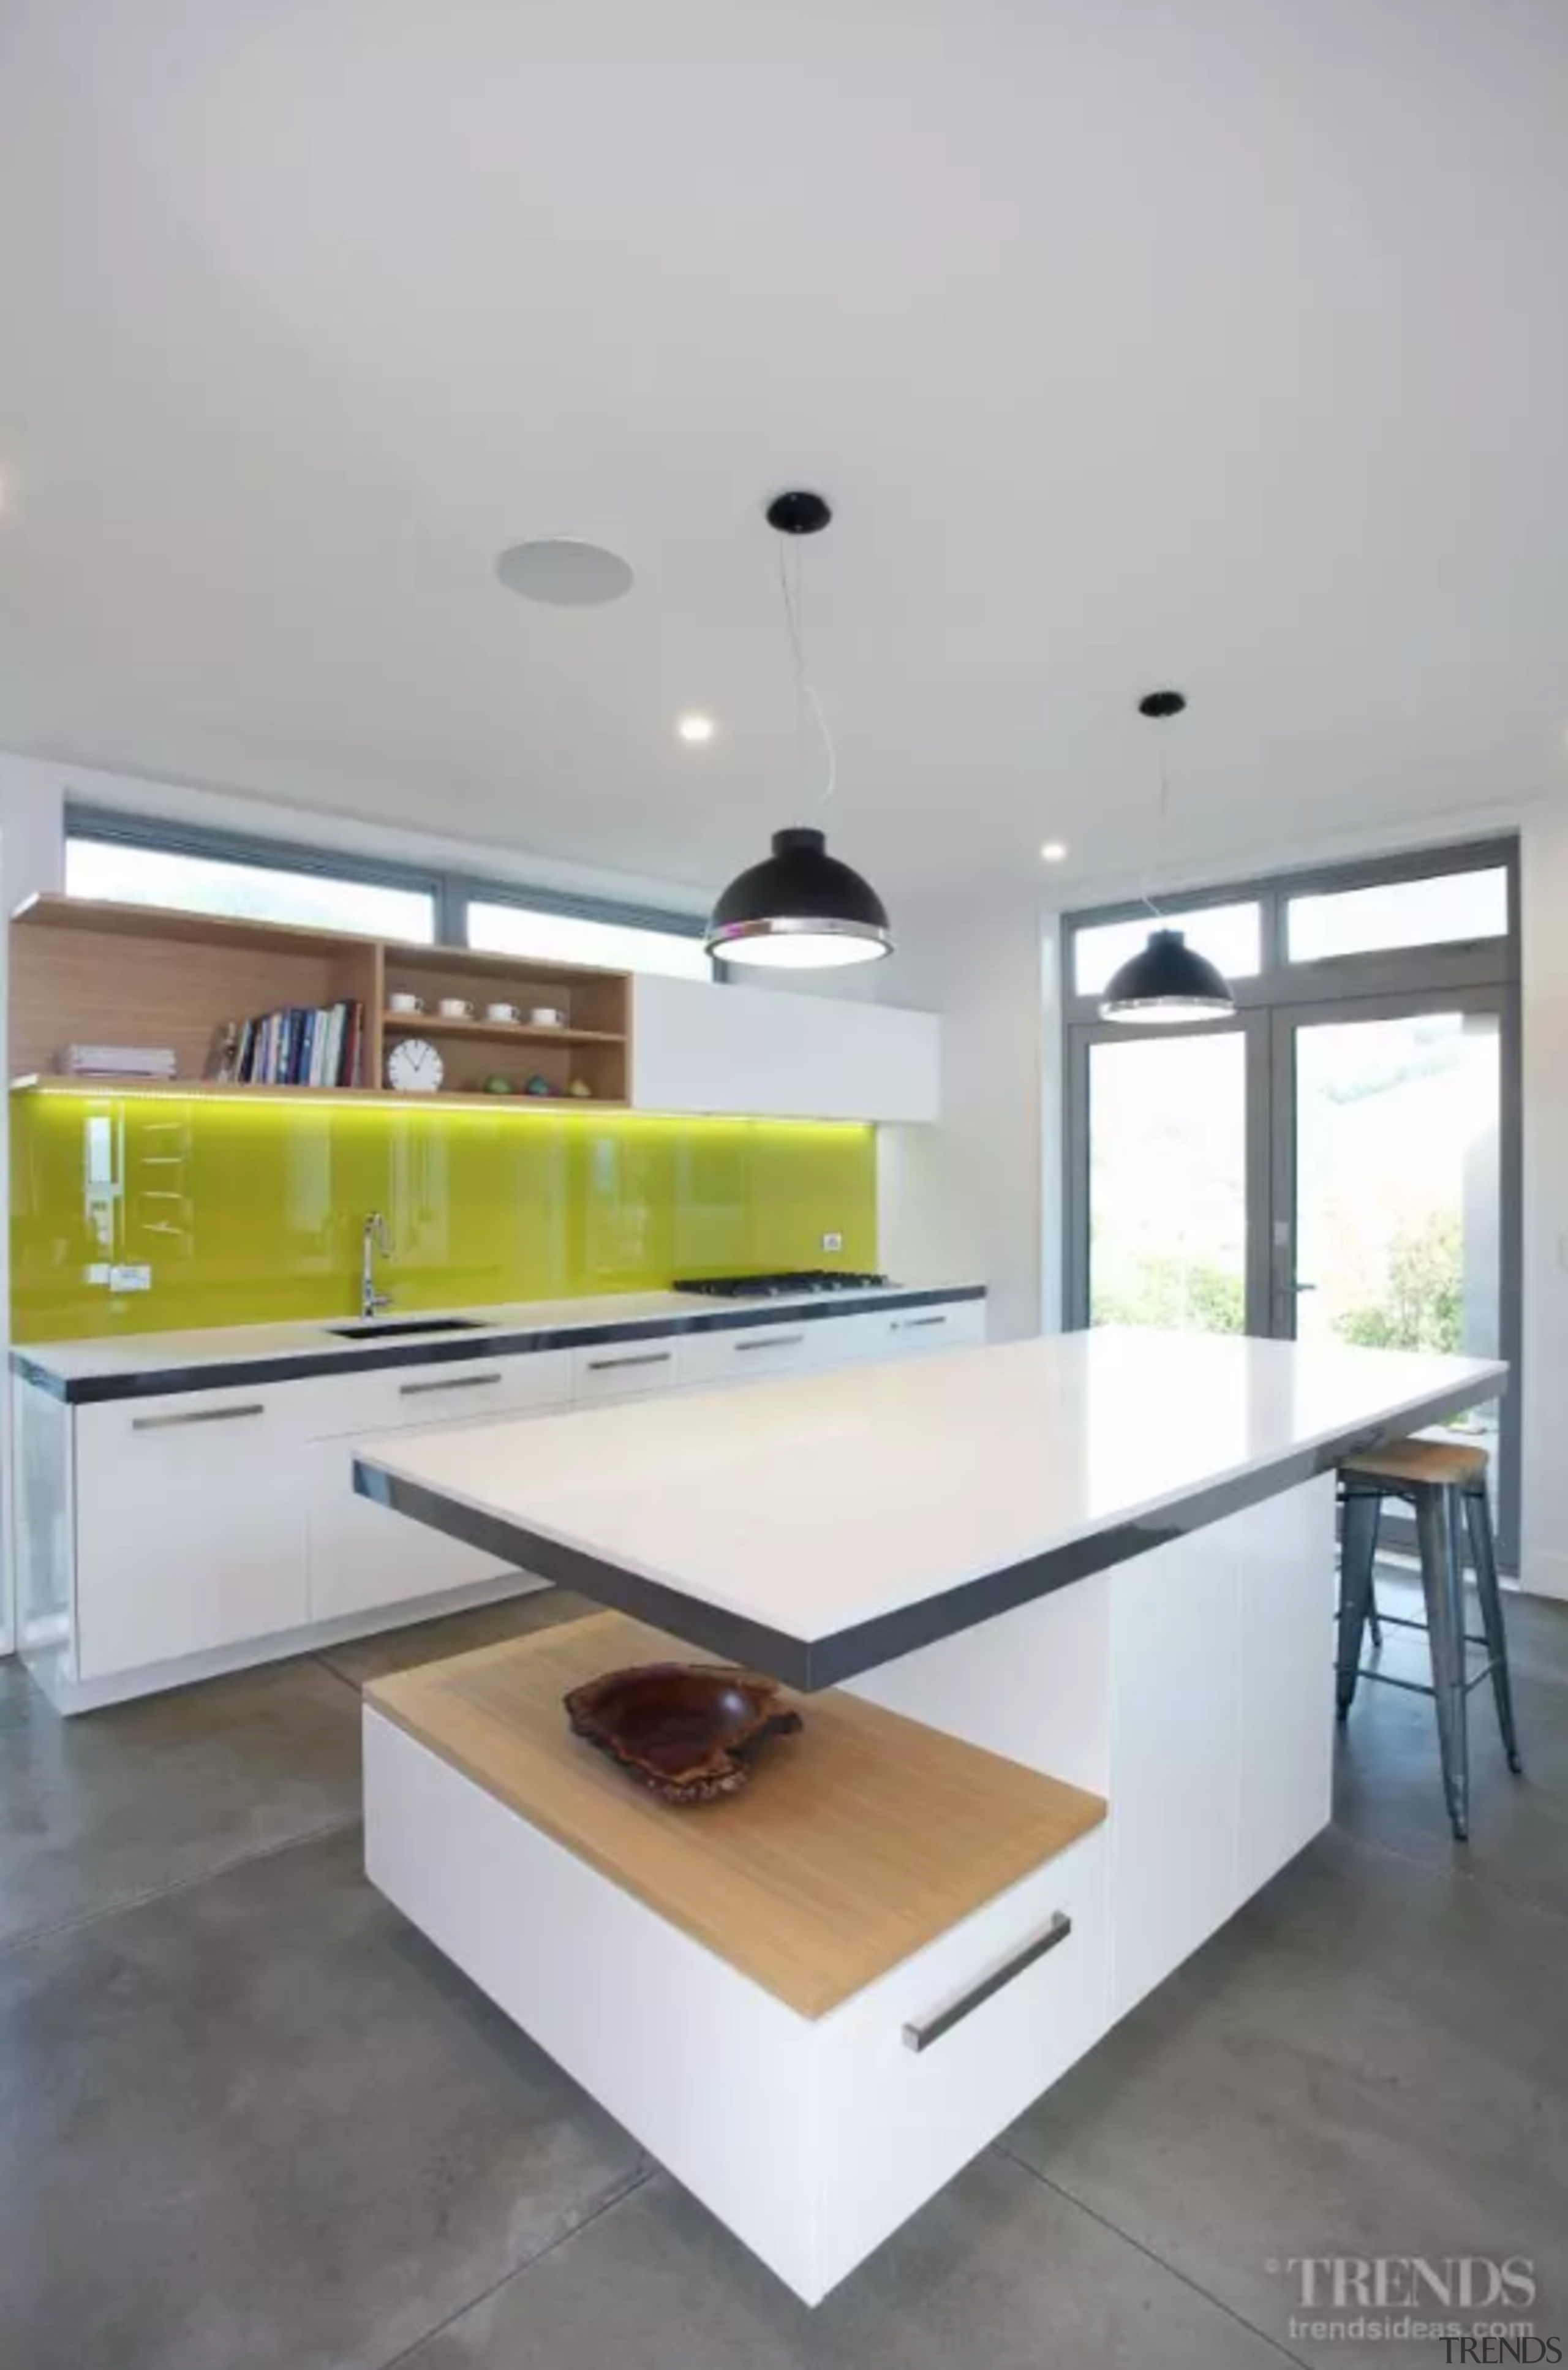 A backpainted glass splashback provides a vibrant accent. architecture, building, cabinetry, ceiling, countertop, design, floor, furniture, house, interior design, kitchen, material property, property, room, shelf, table, gray